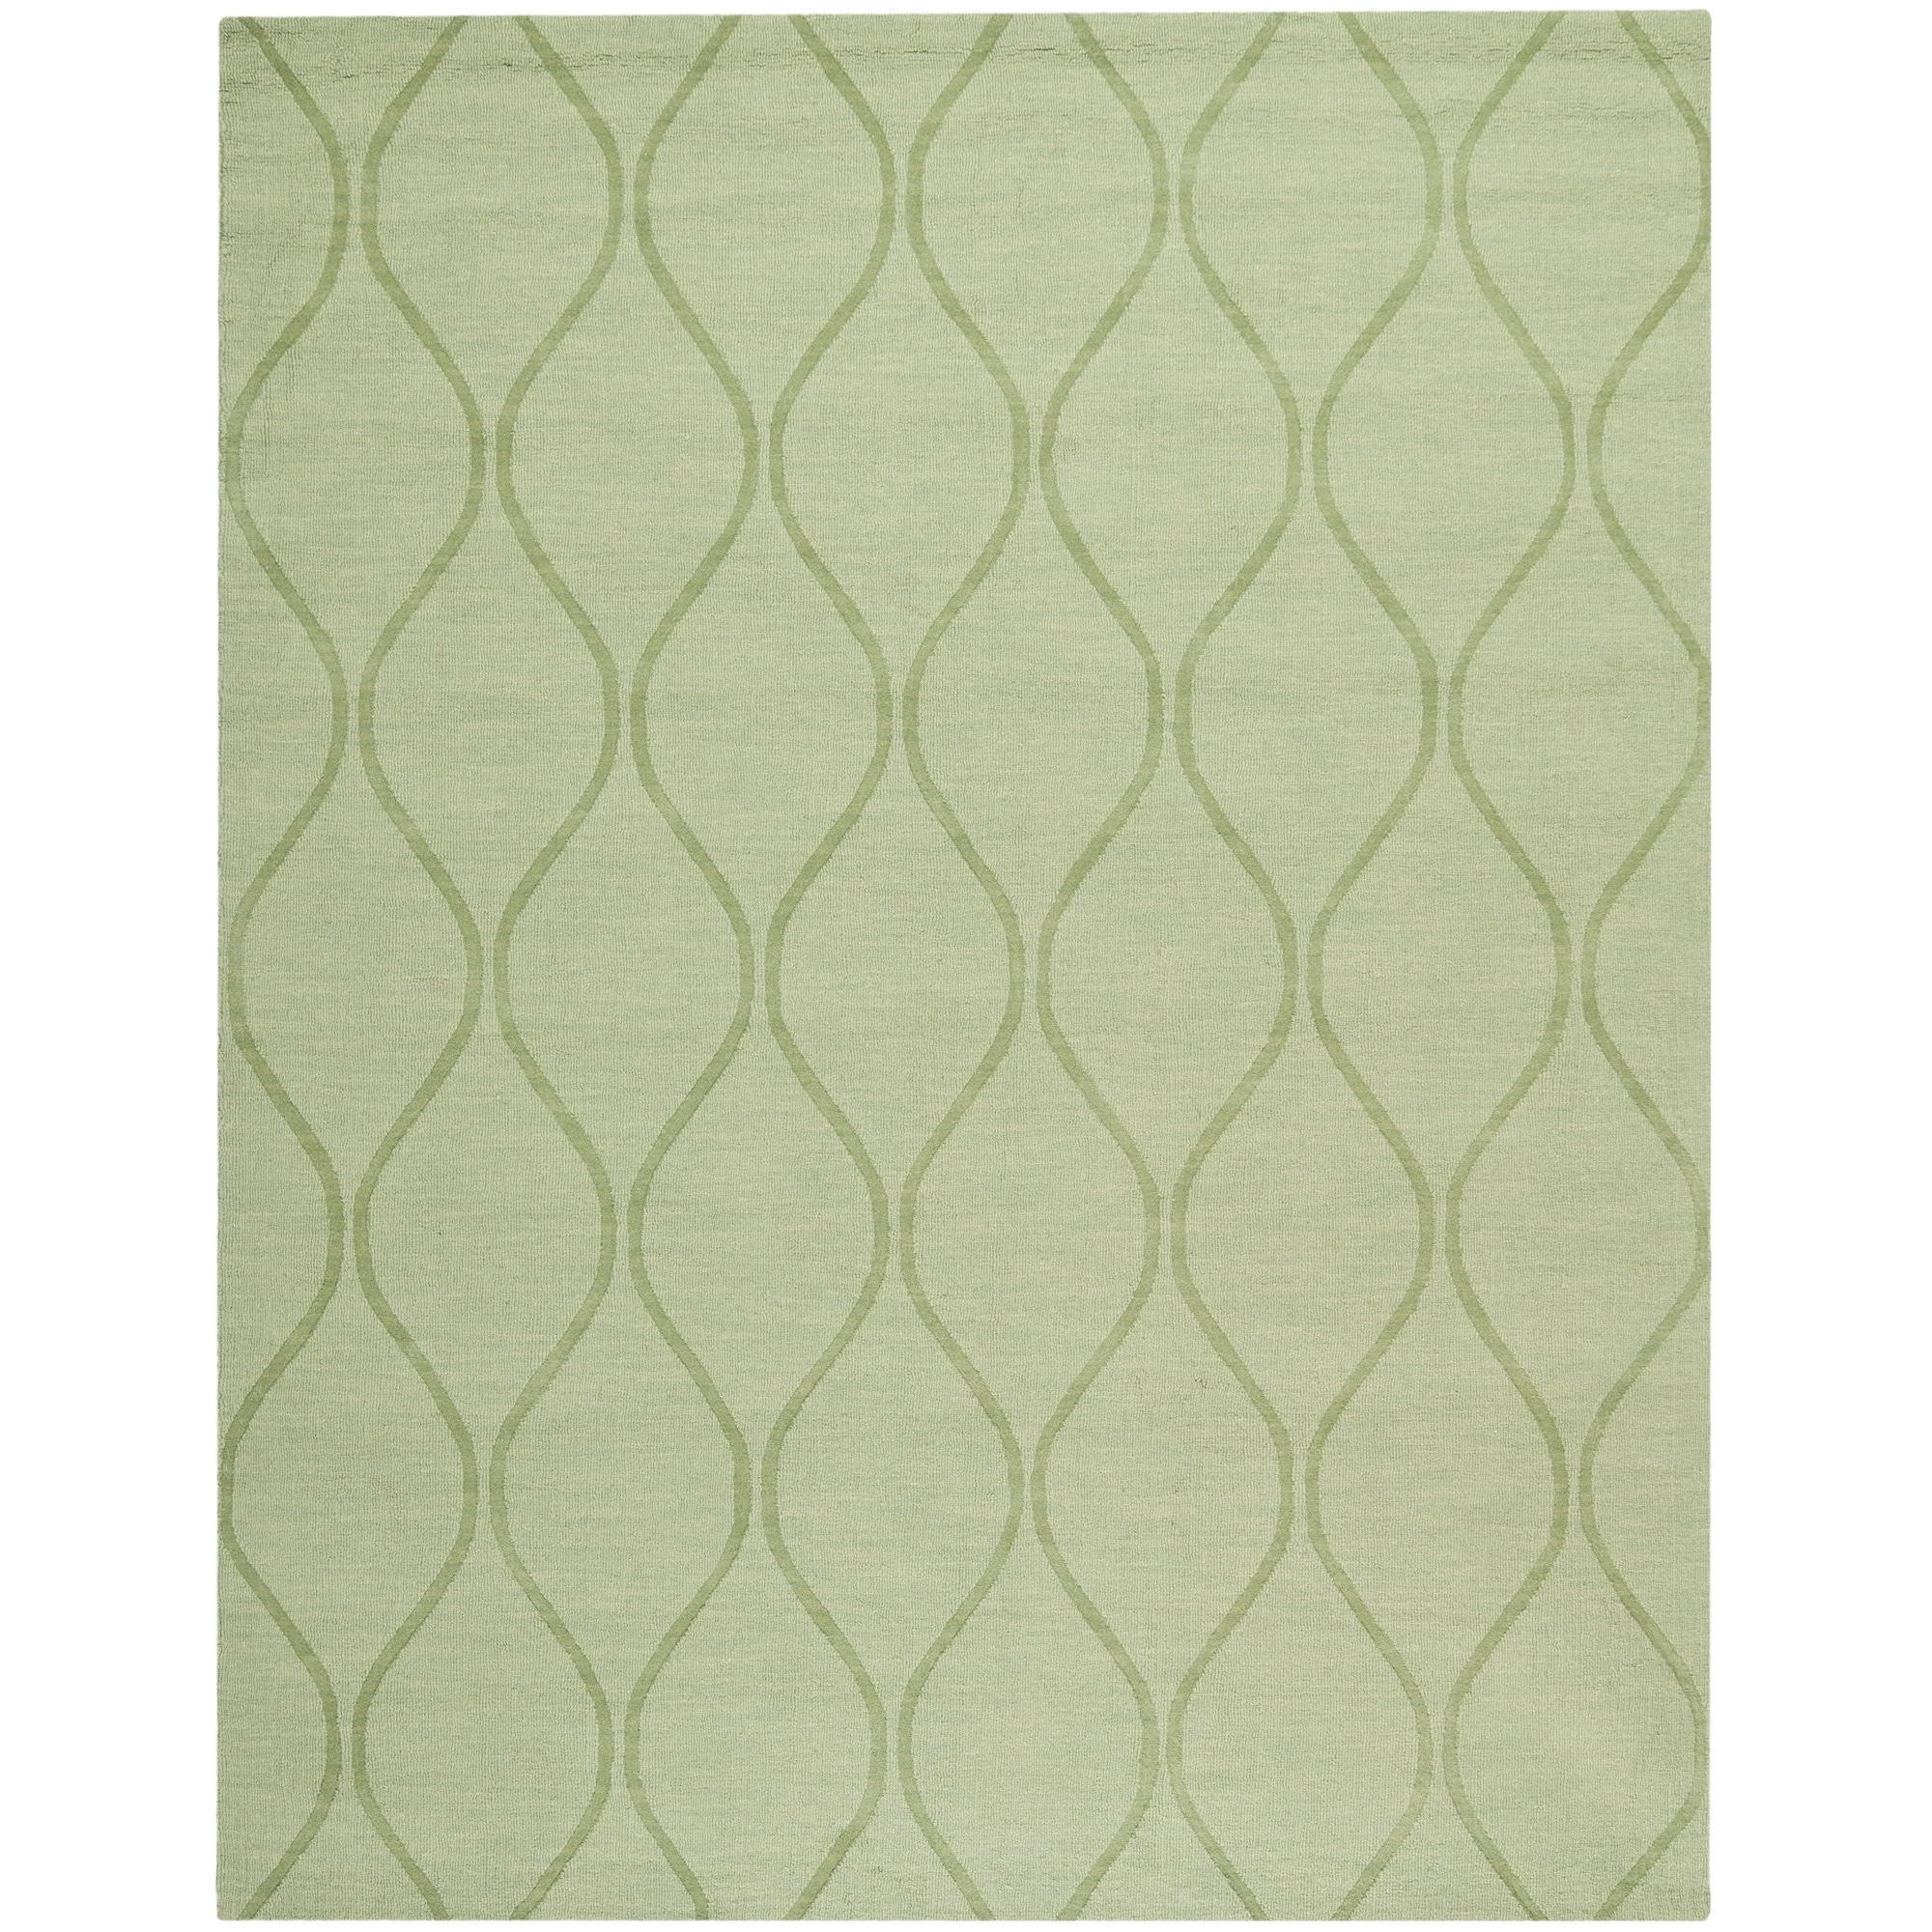 Safavieh Hand-made Impressions Green Wool Rug (8'3 x 11')